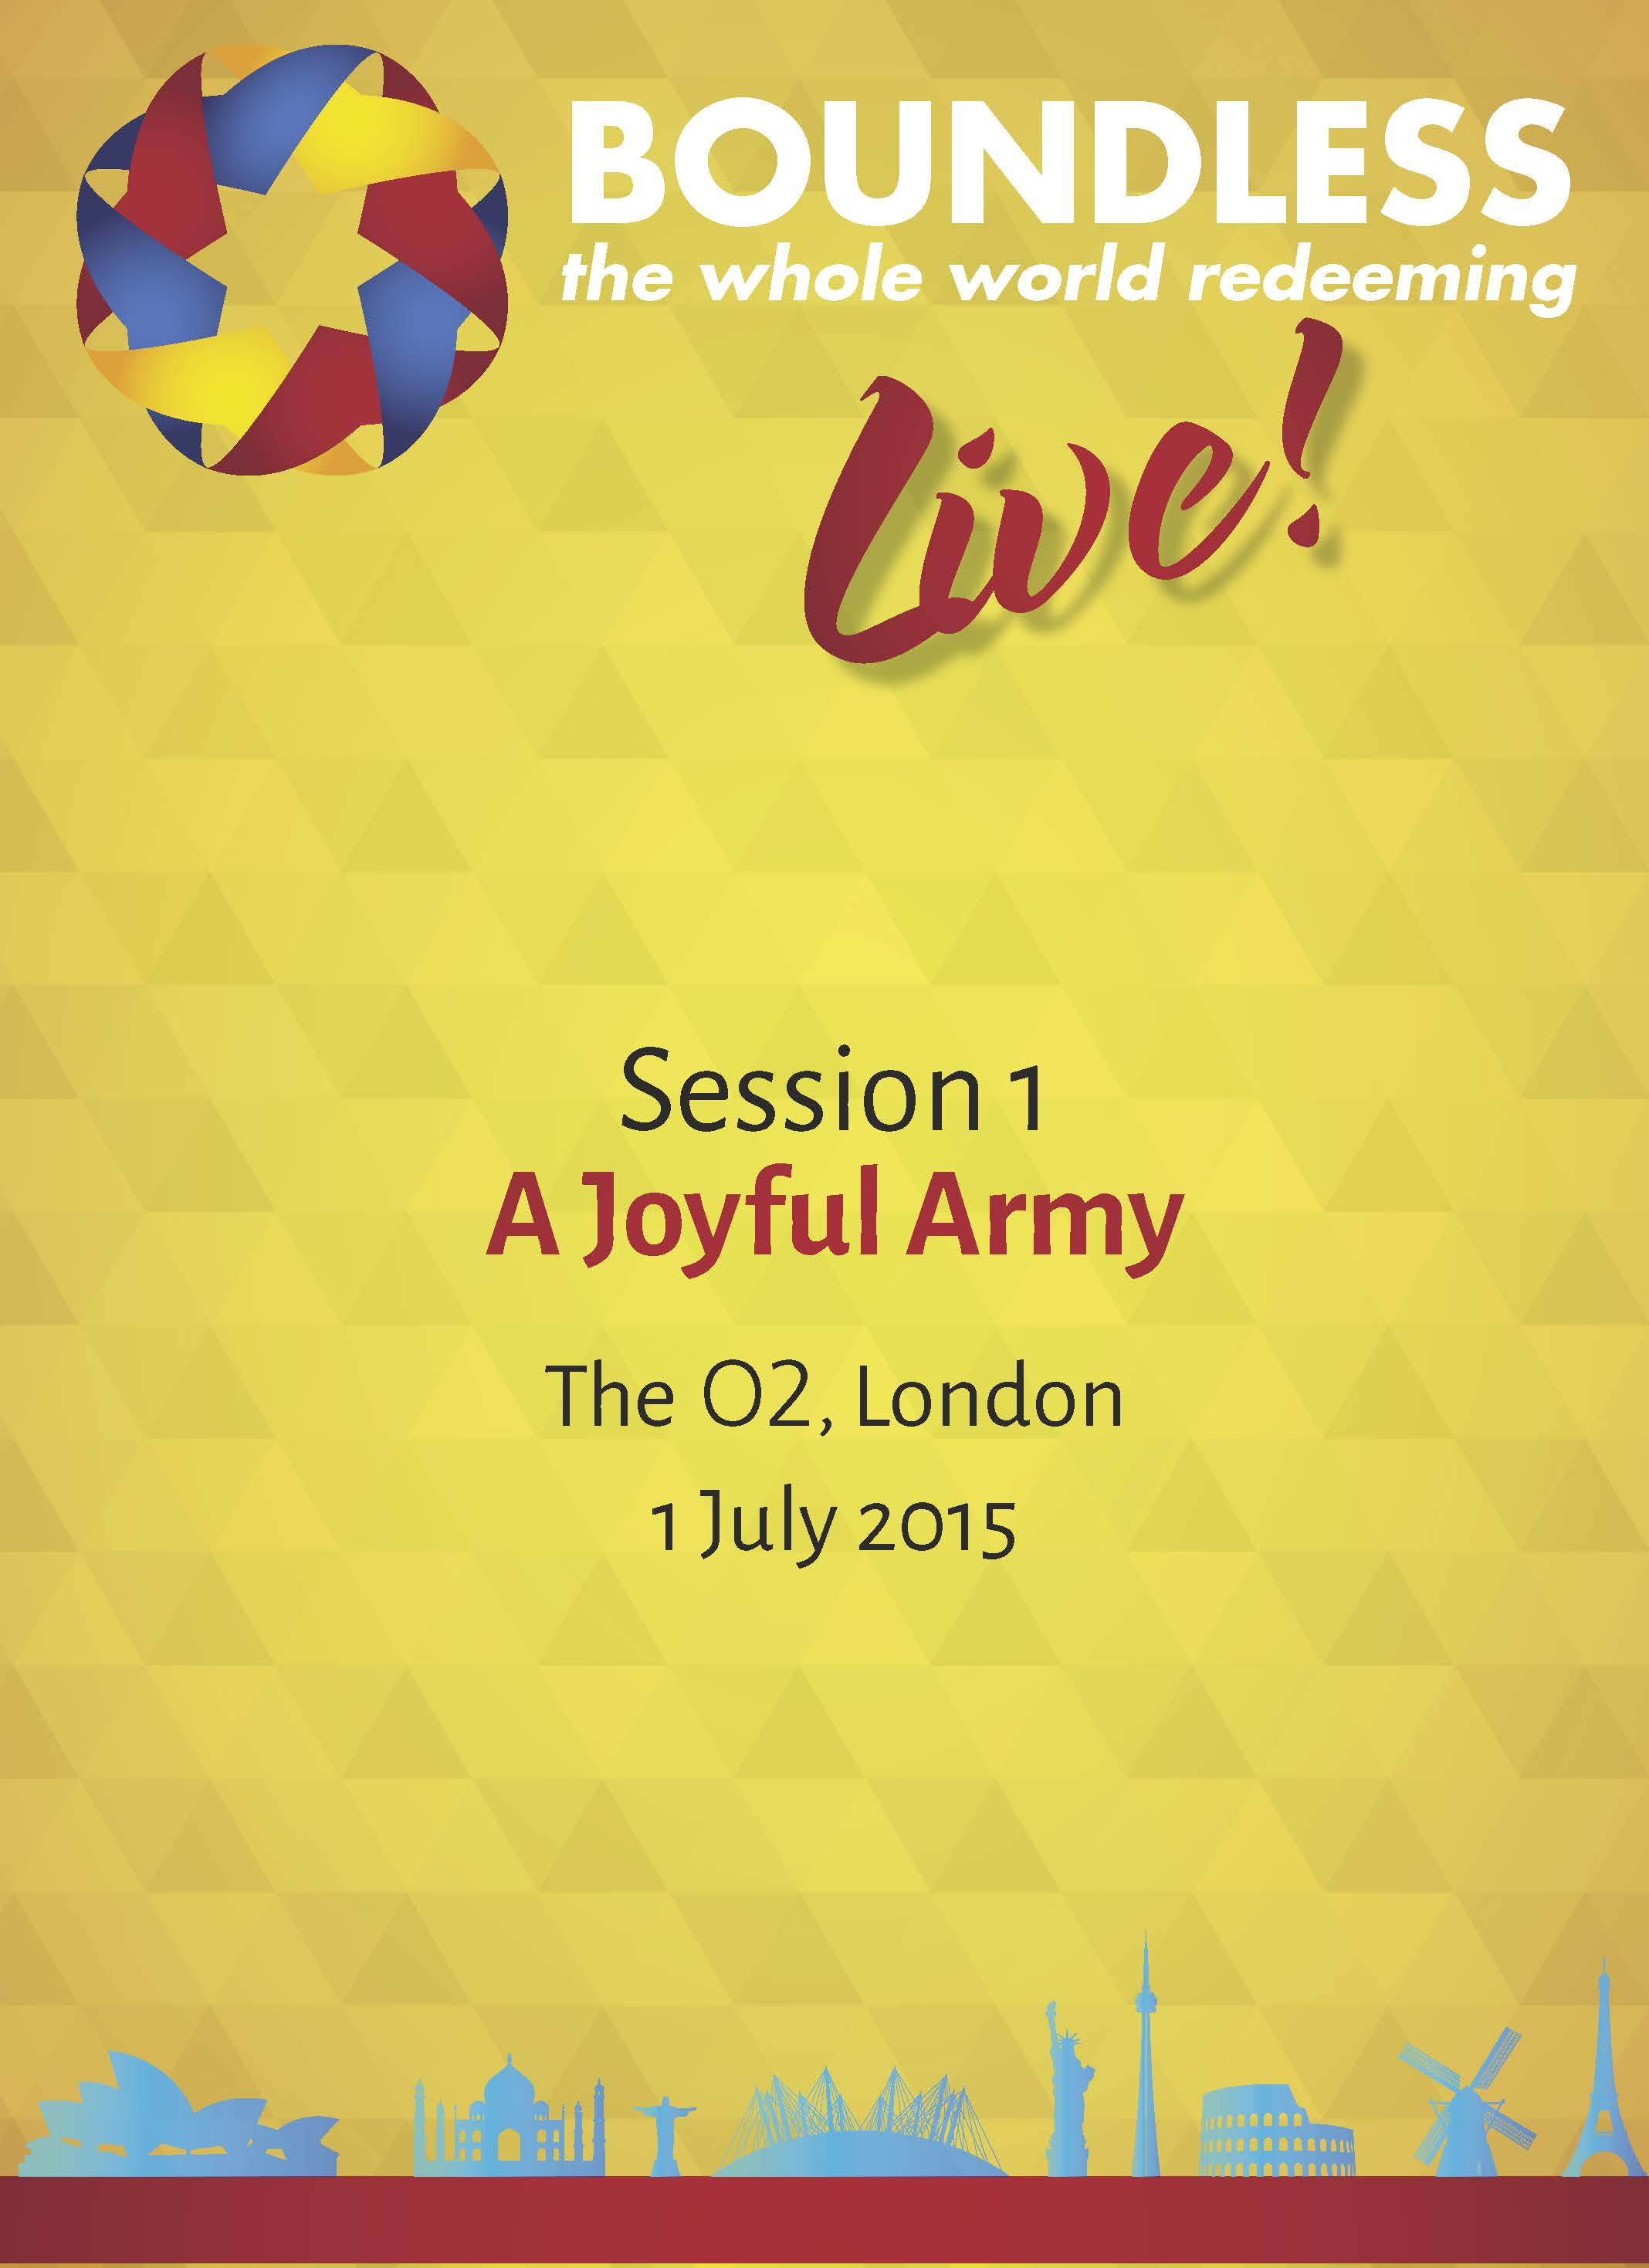 Boundless Live! Session 1 - A Joyful Army